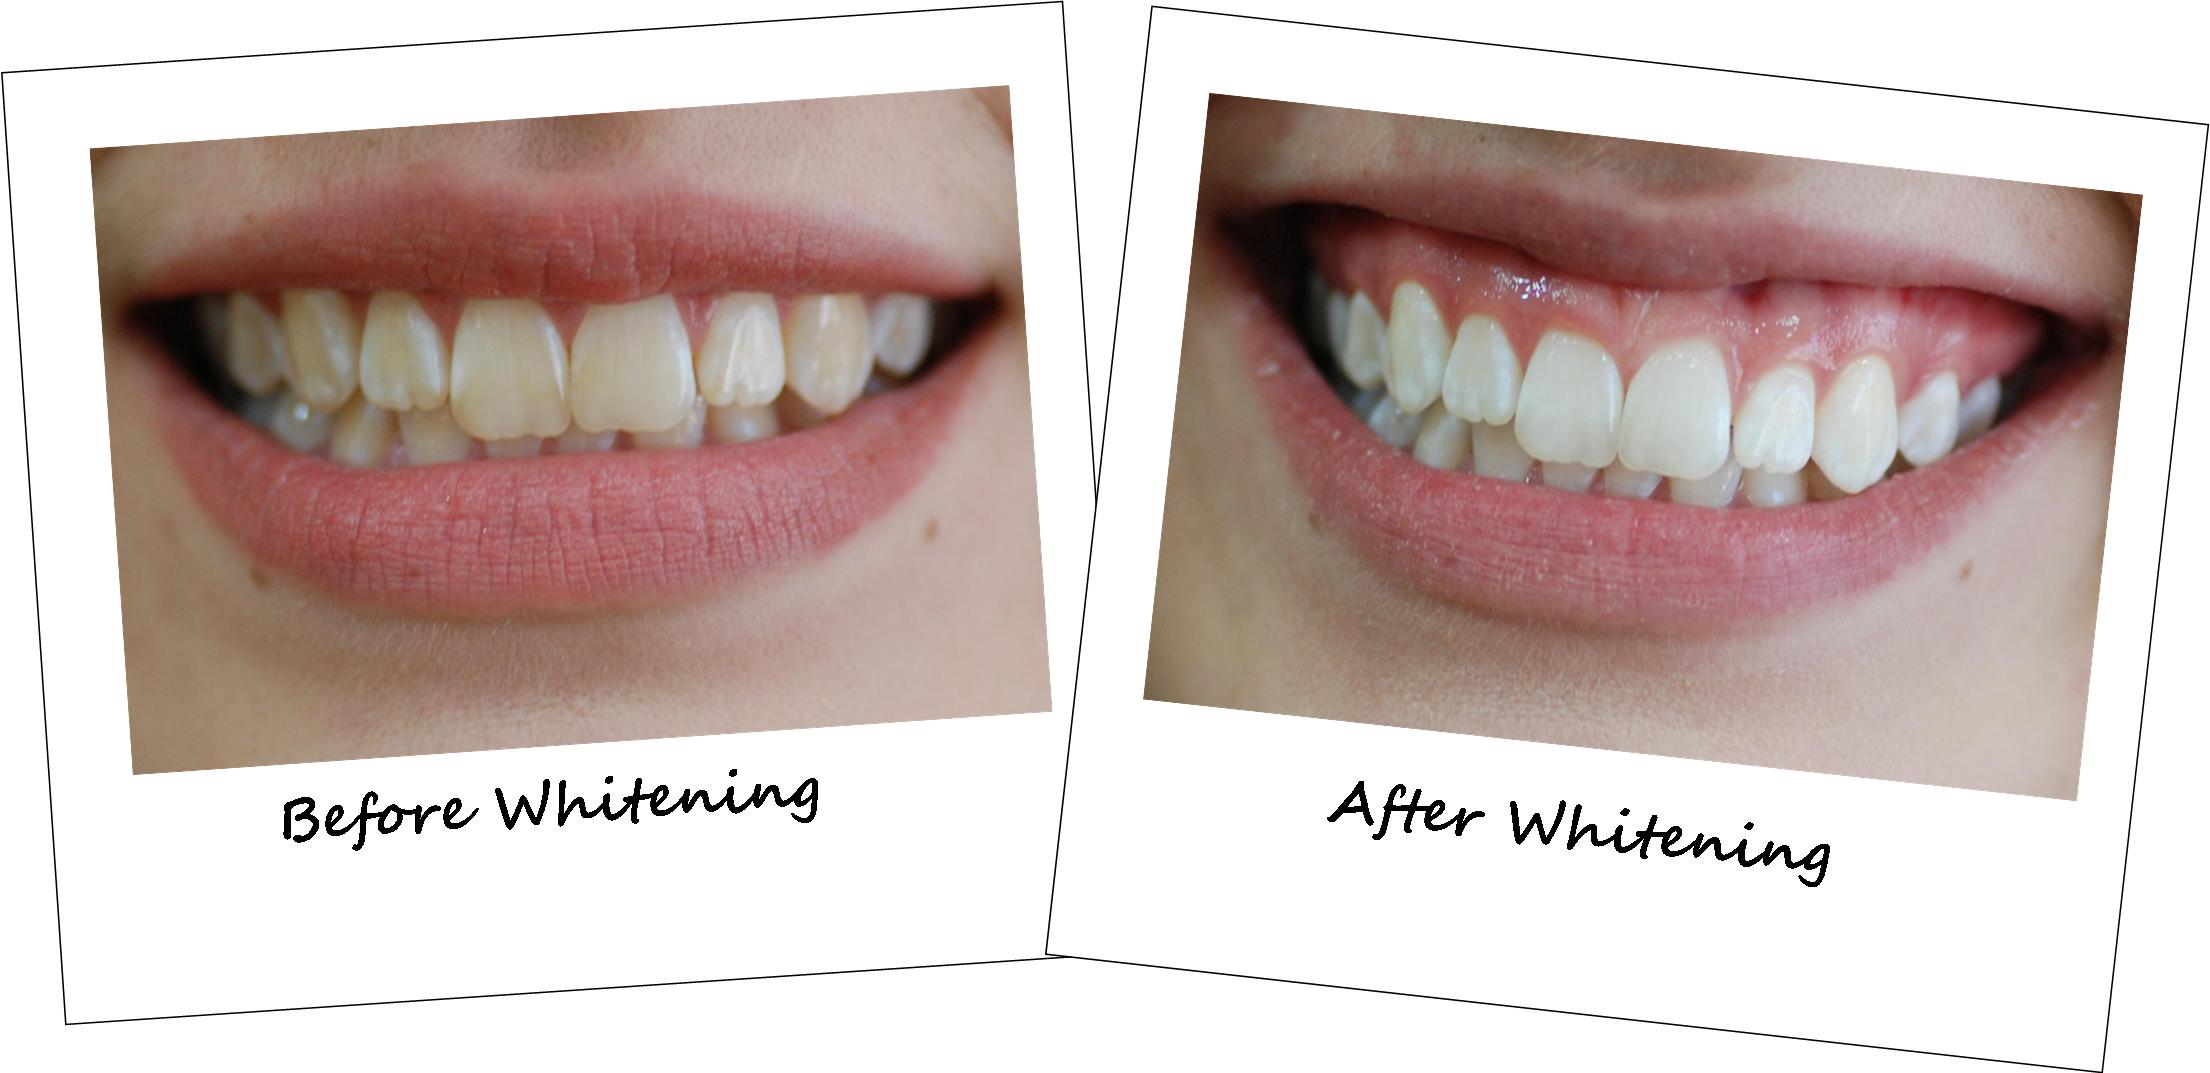 Teeth Whitening Could Force You To Appear Younger Teeth Whitening